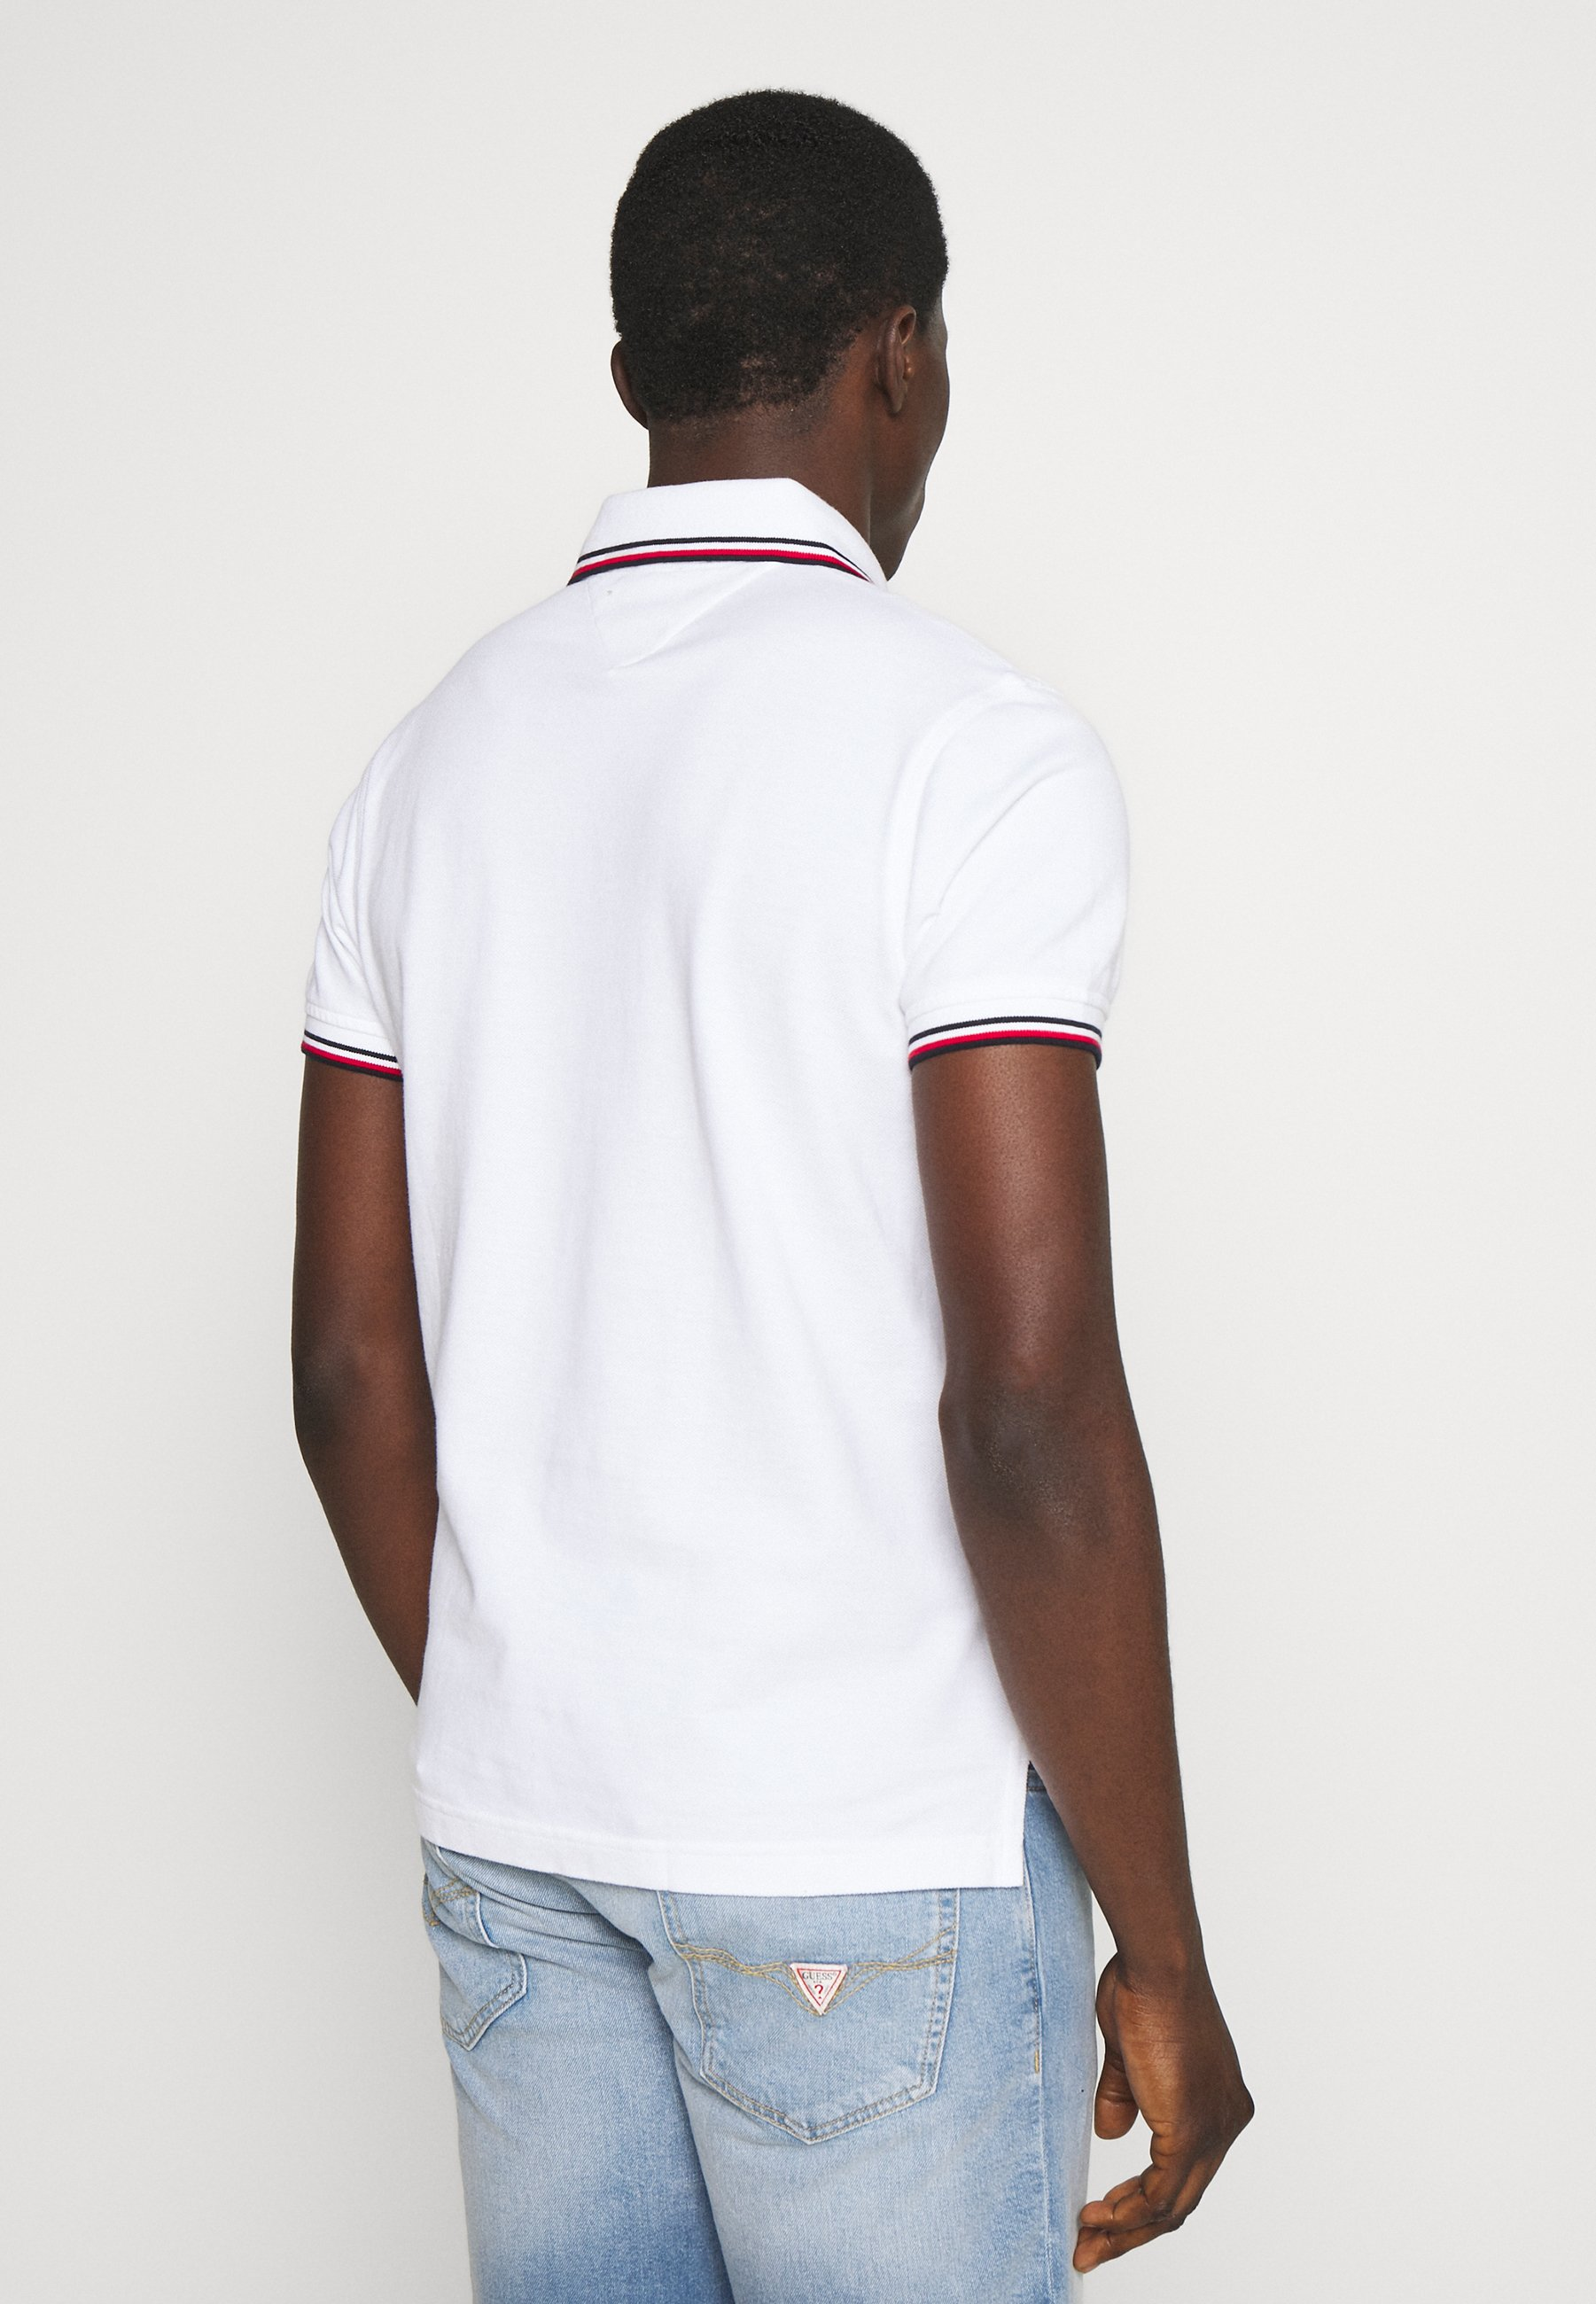 Tommy Hilfiger Tipped Slim Fit - Piké White